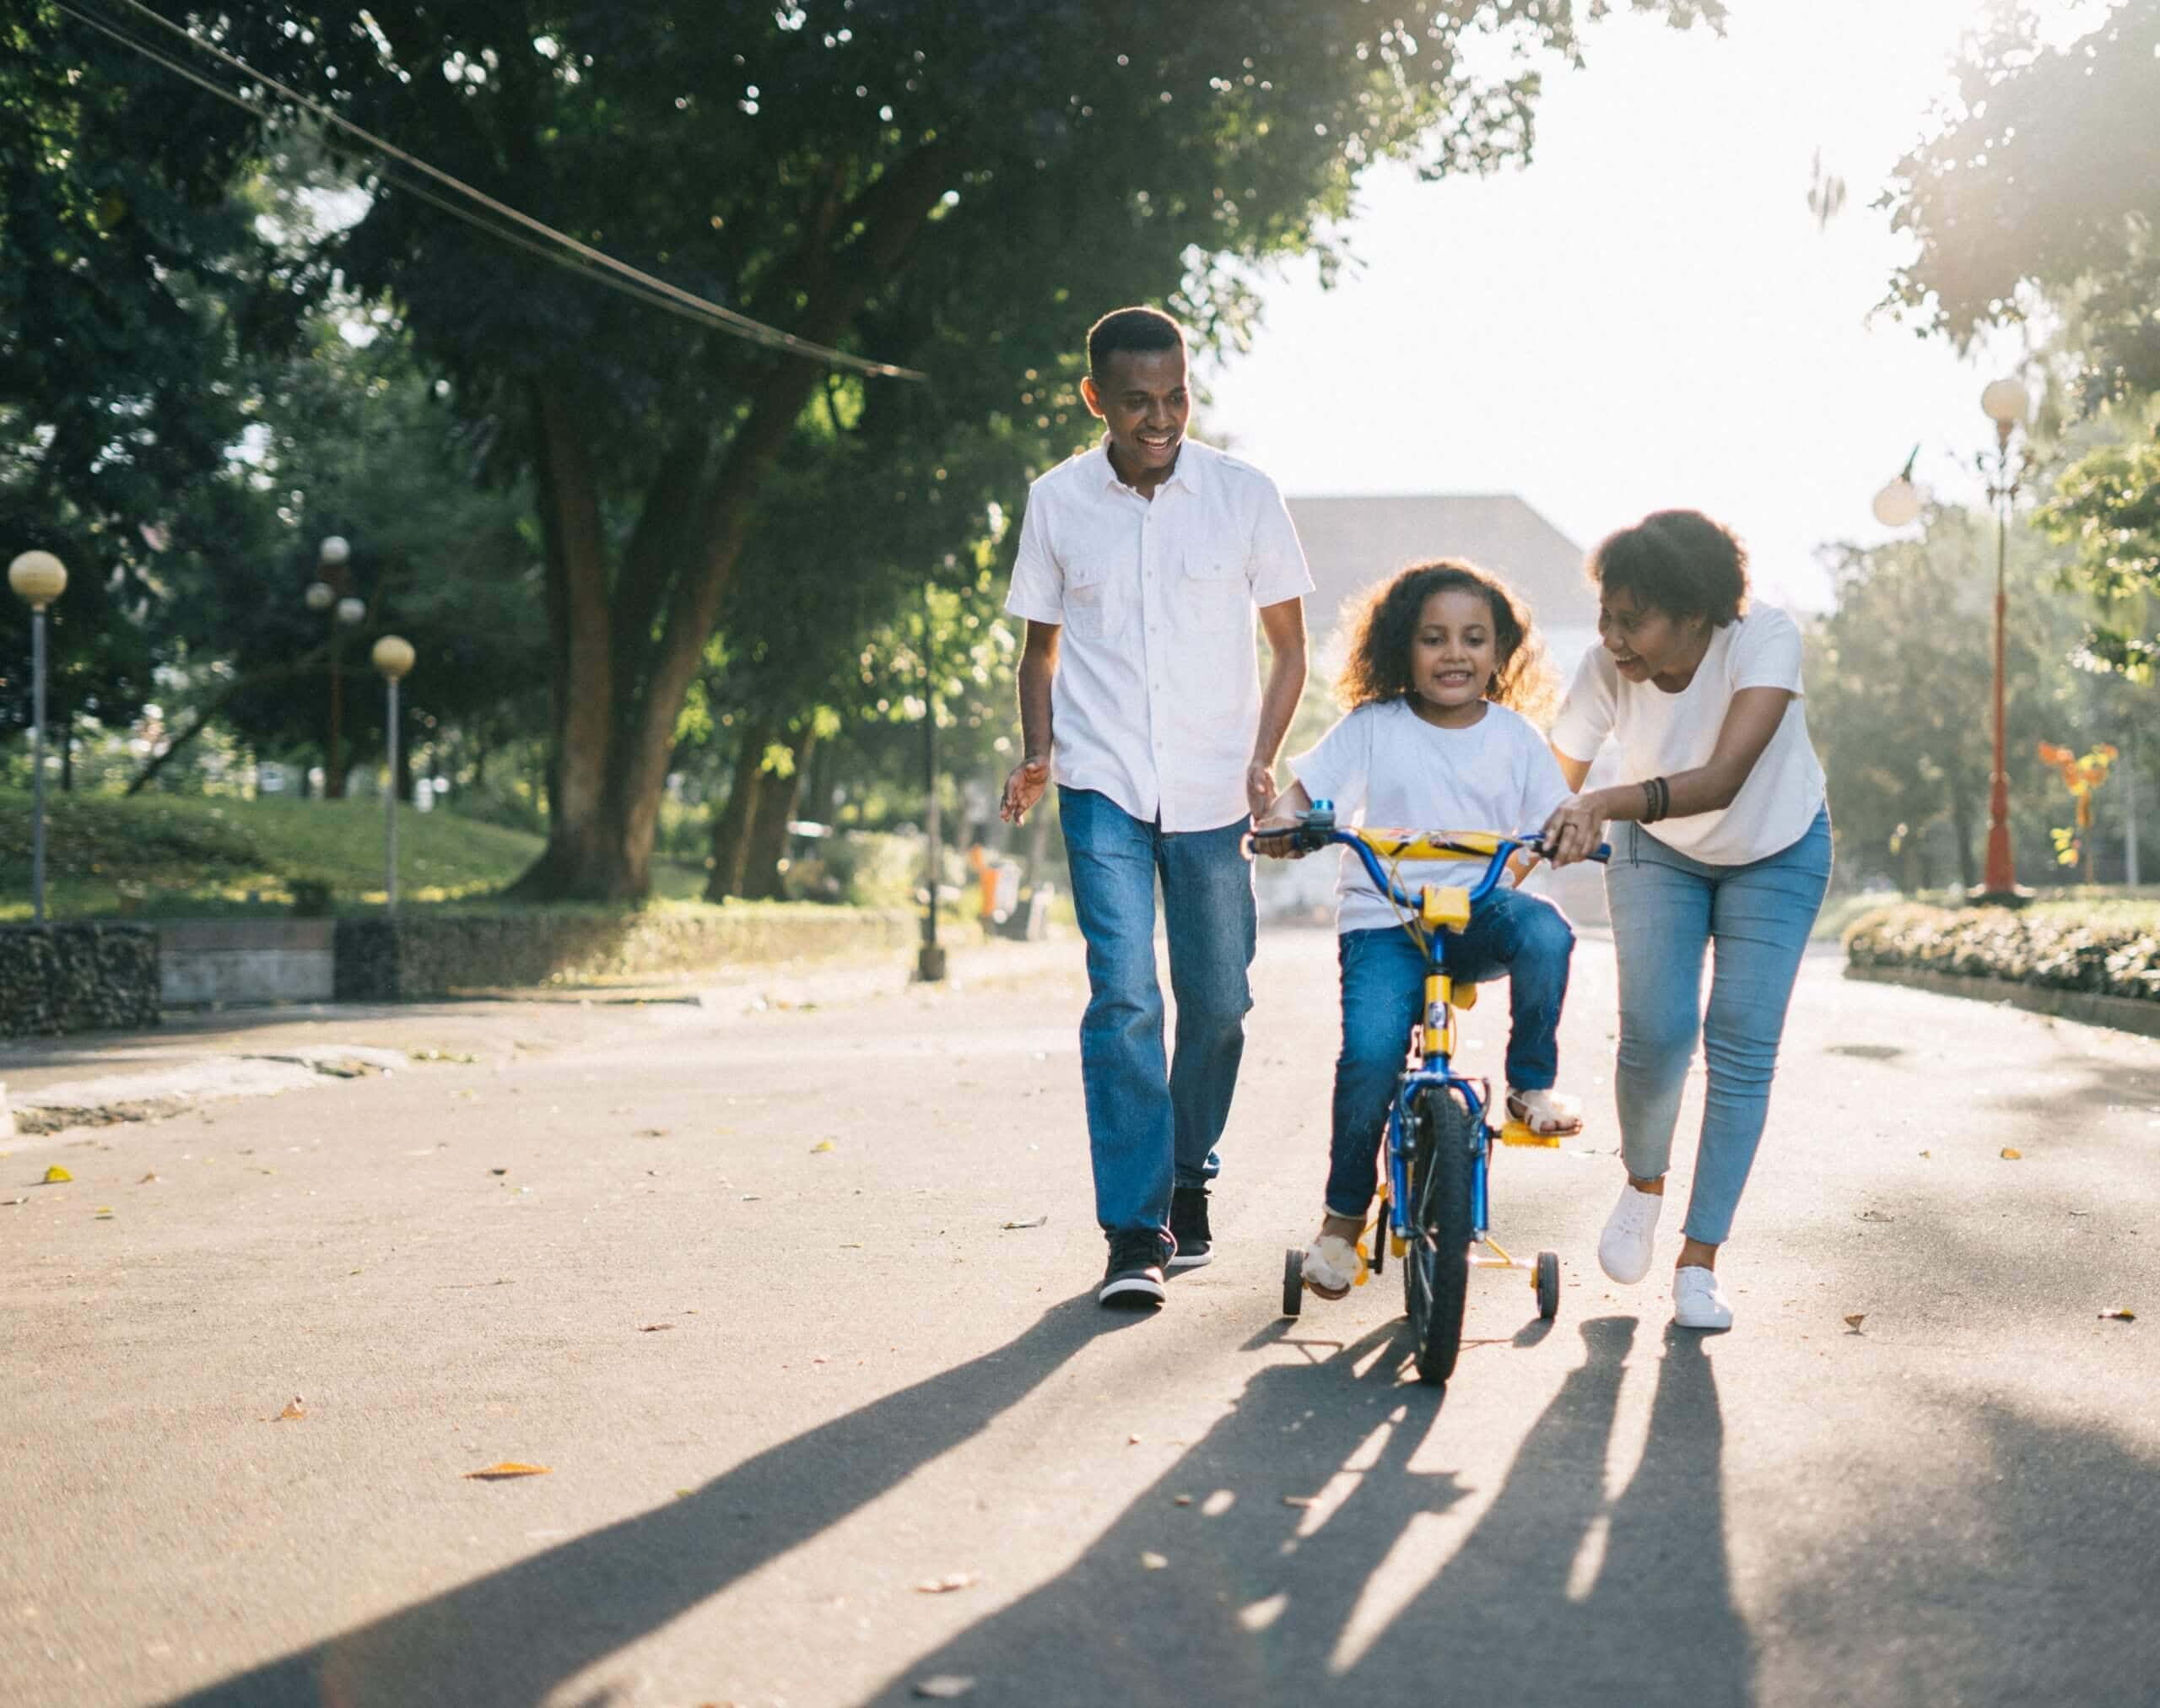 Parents teaching their child how to ride a bike- Pexels stock image